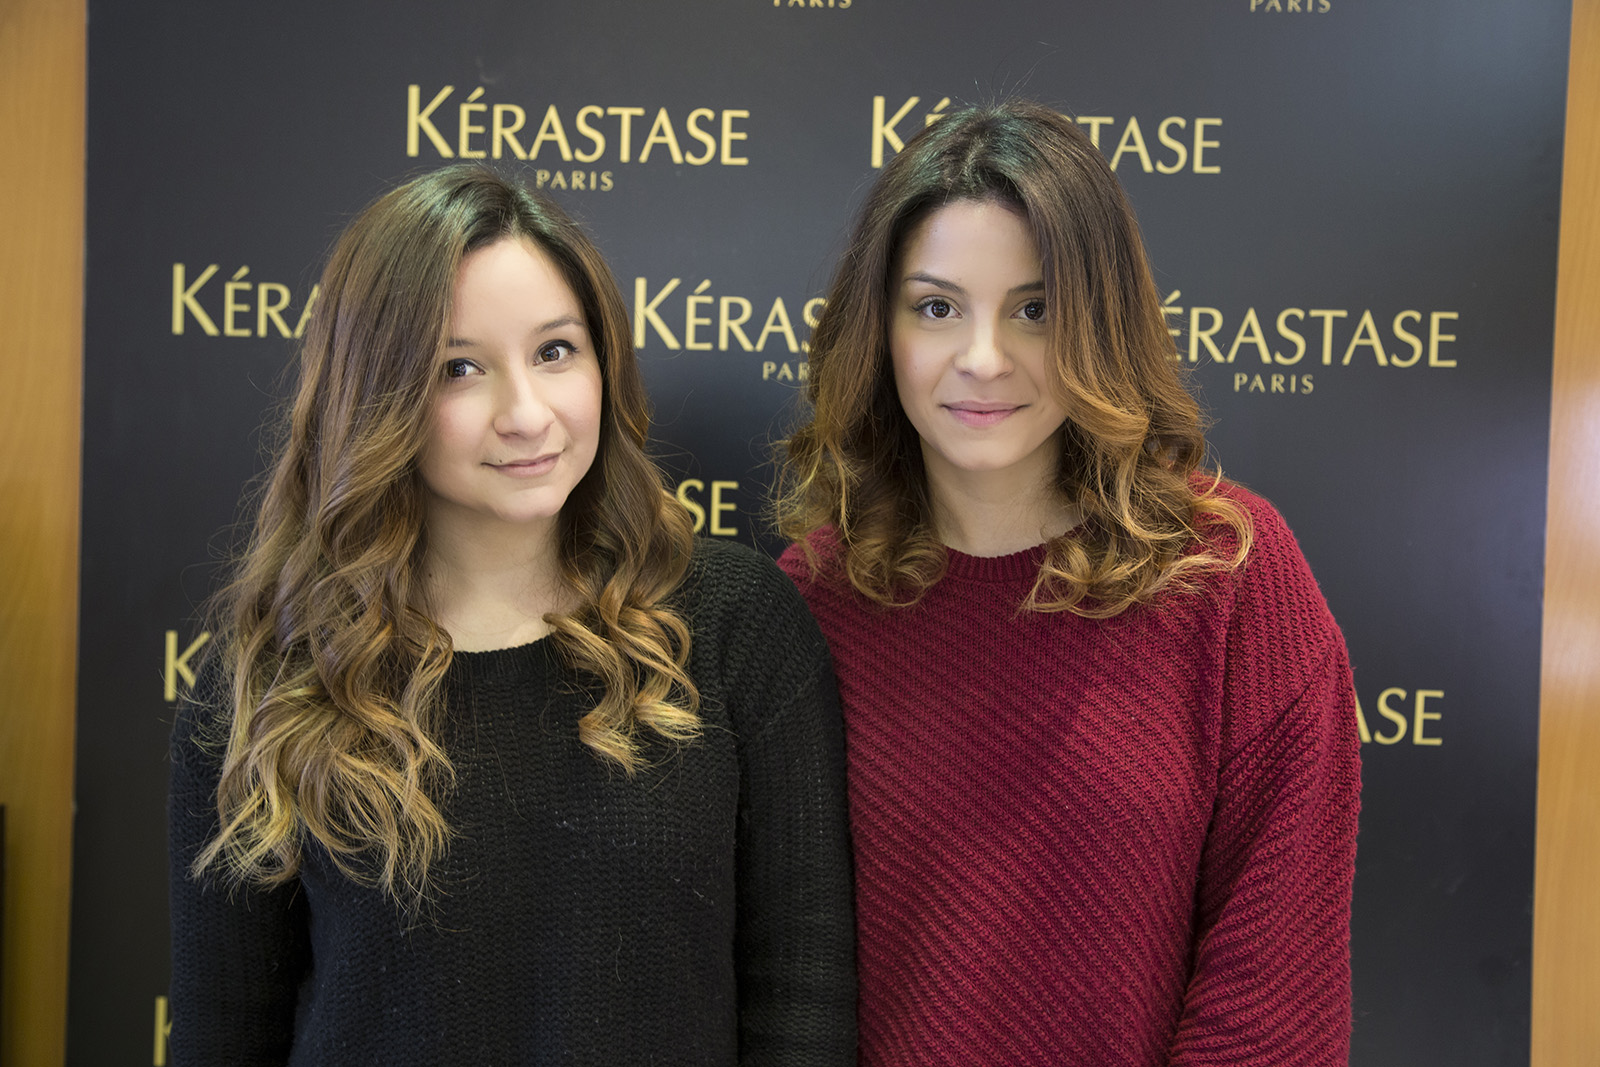 The Chronologiste experience by Kerastase